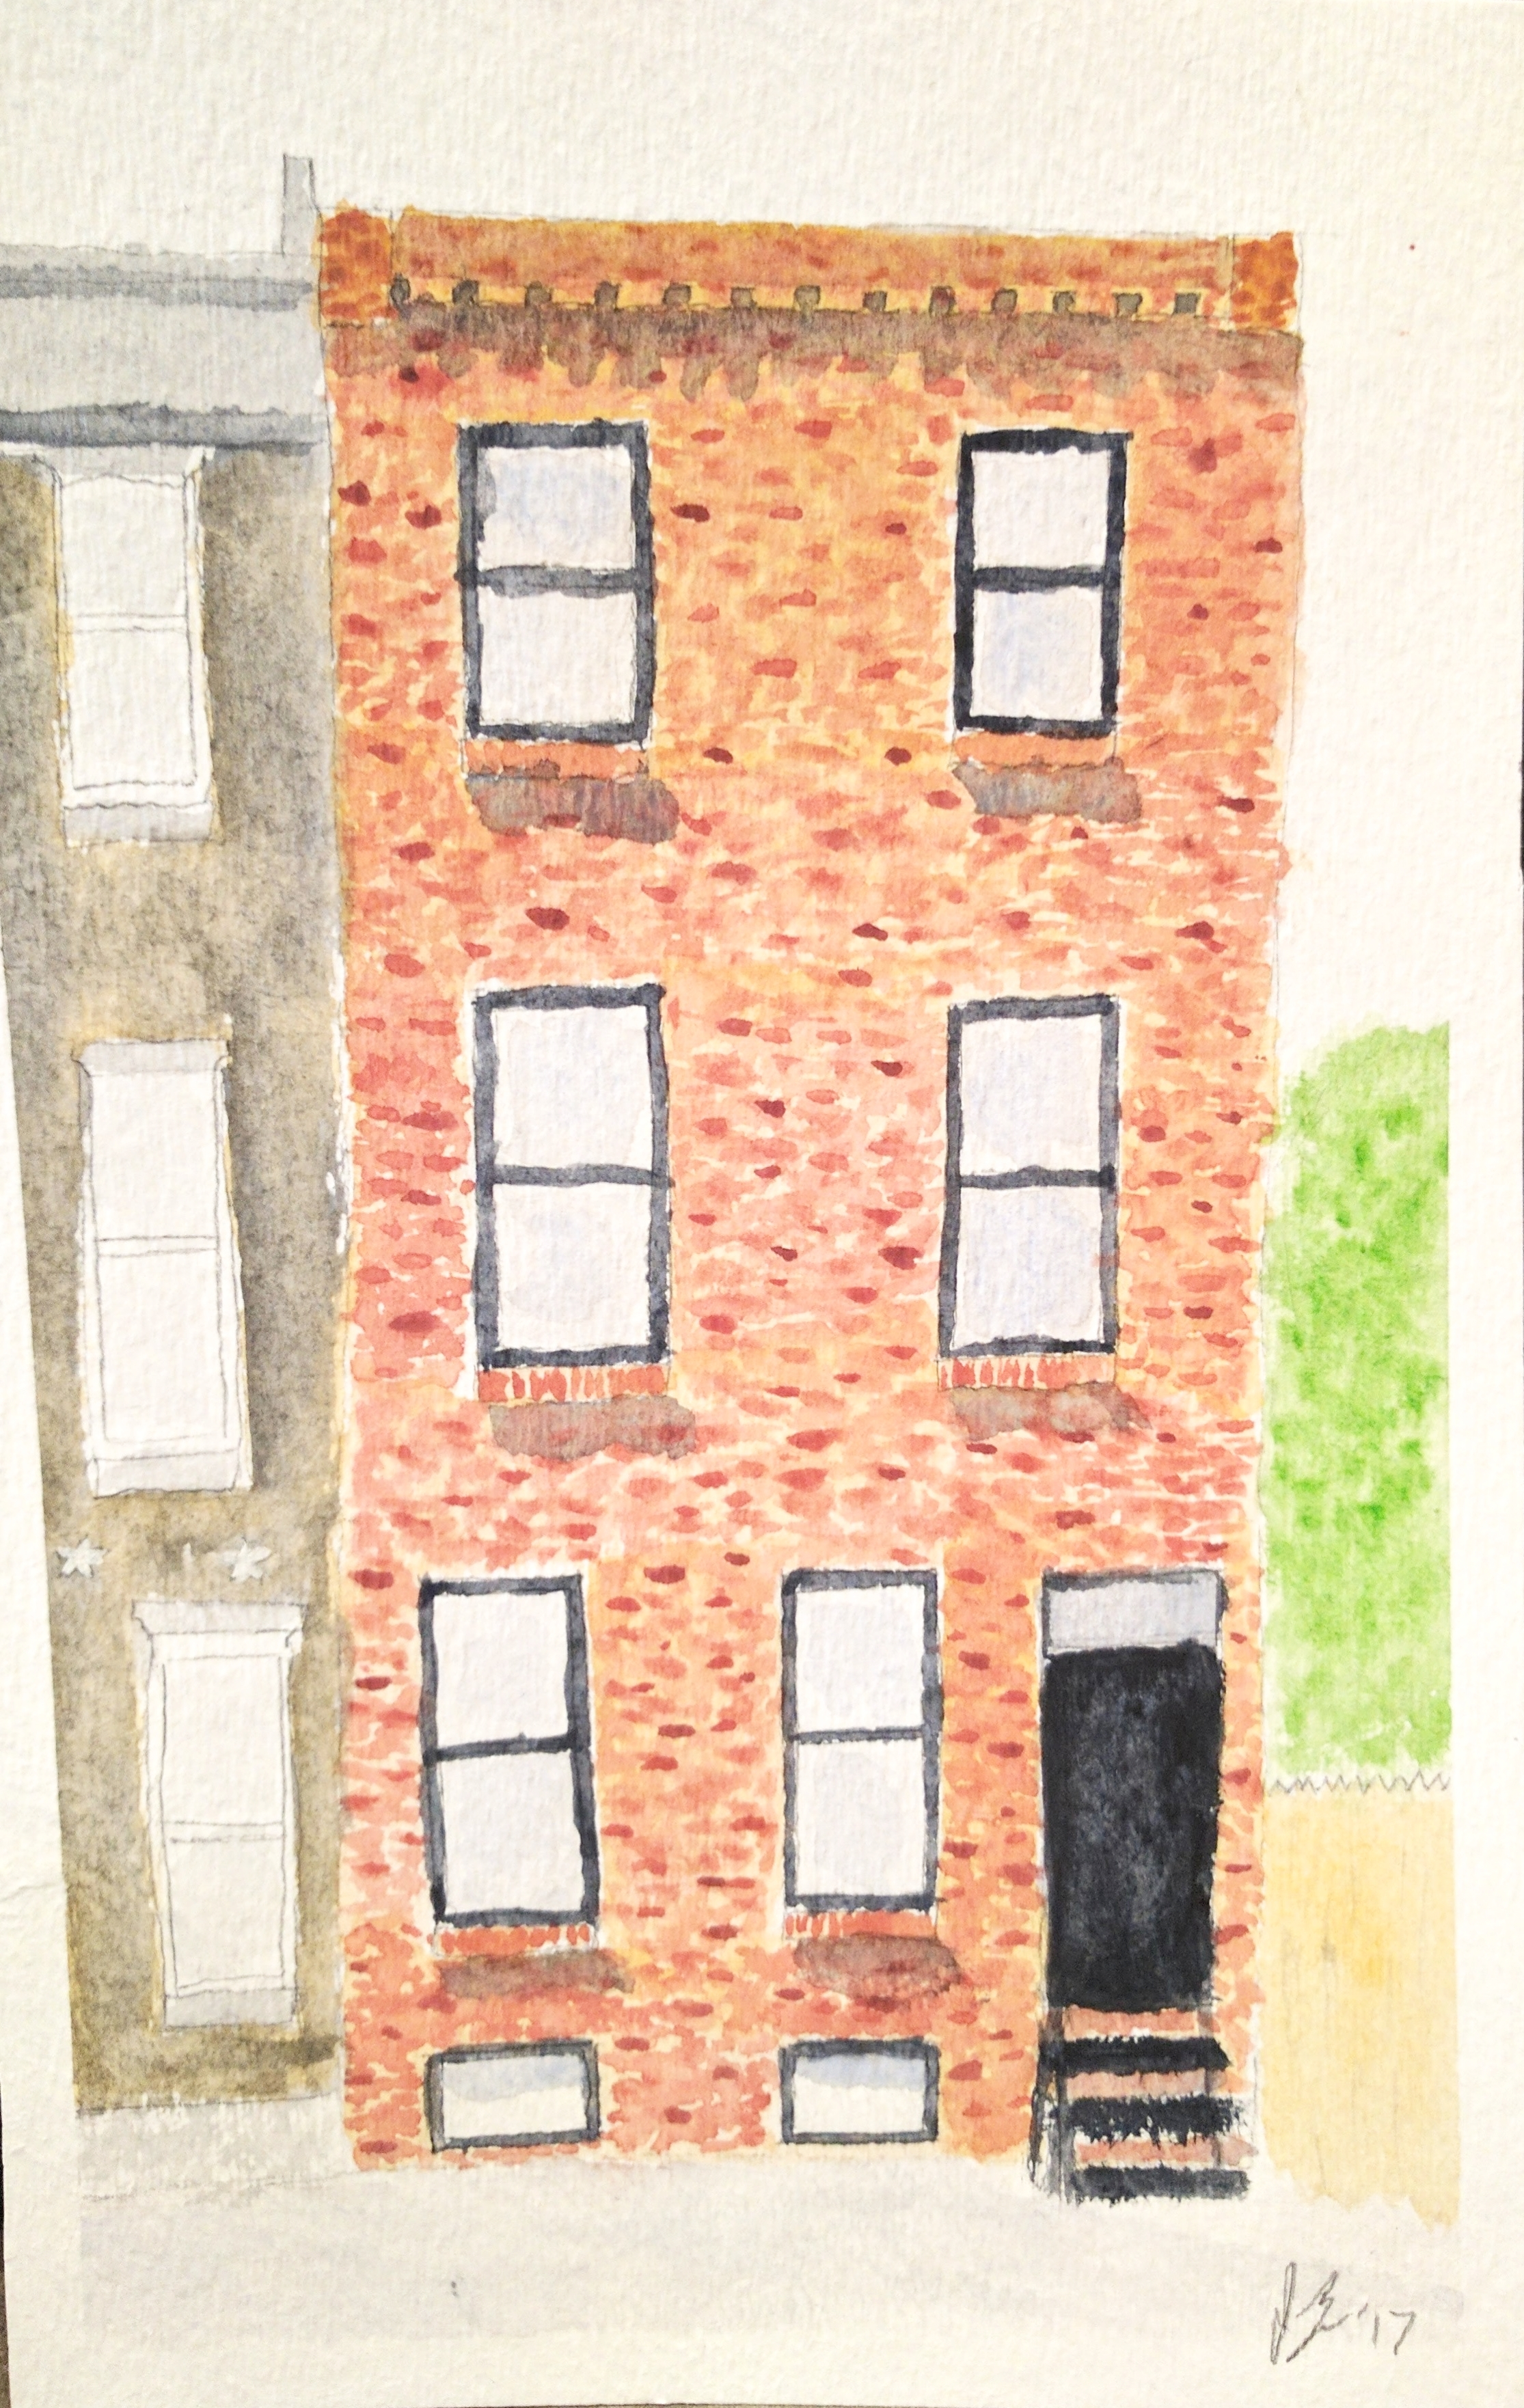 March, 2017  I went on vacation in Philadelphia in March (during a blizzard -- perfect timing), and stayed at a really charming AirBnB. I liked the look of the house, and felt that the architecture was simple enough that I could take a stab at painting it. I'd never painted brick before, and that was a bit of a challenge, but if you don't stare at it too closely, I think it looks pretty good!